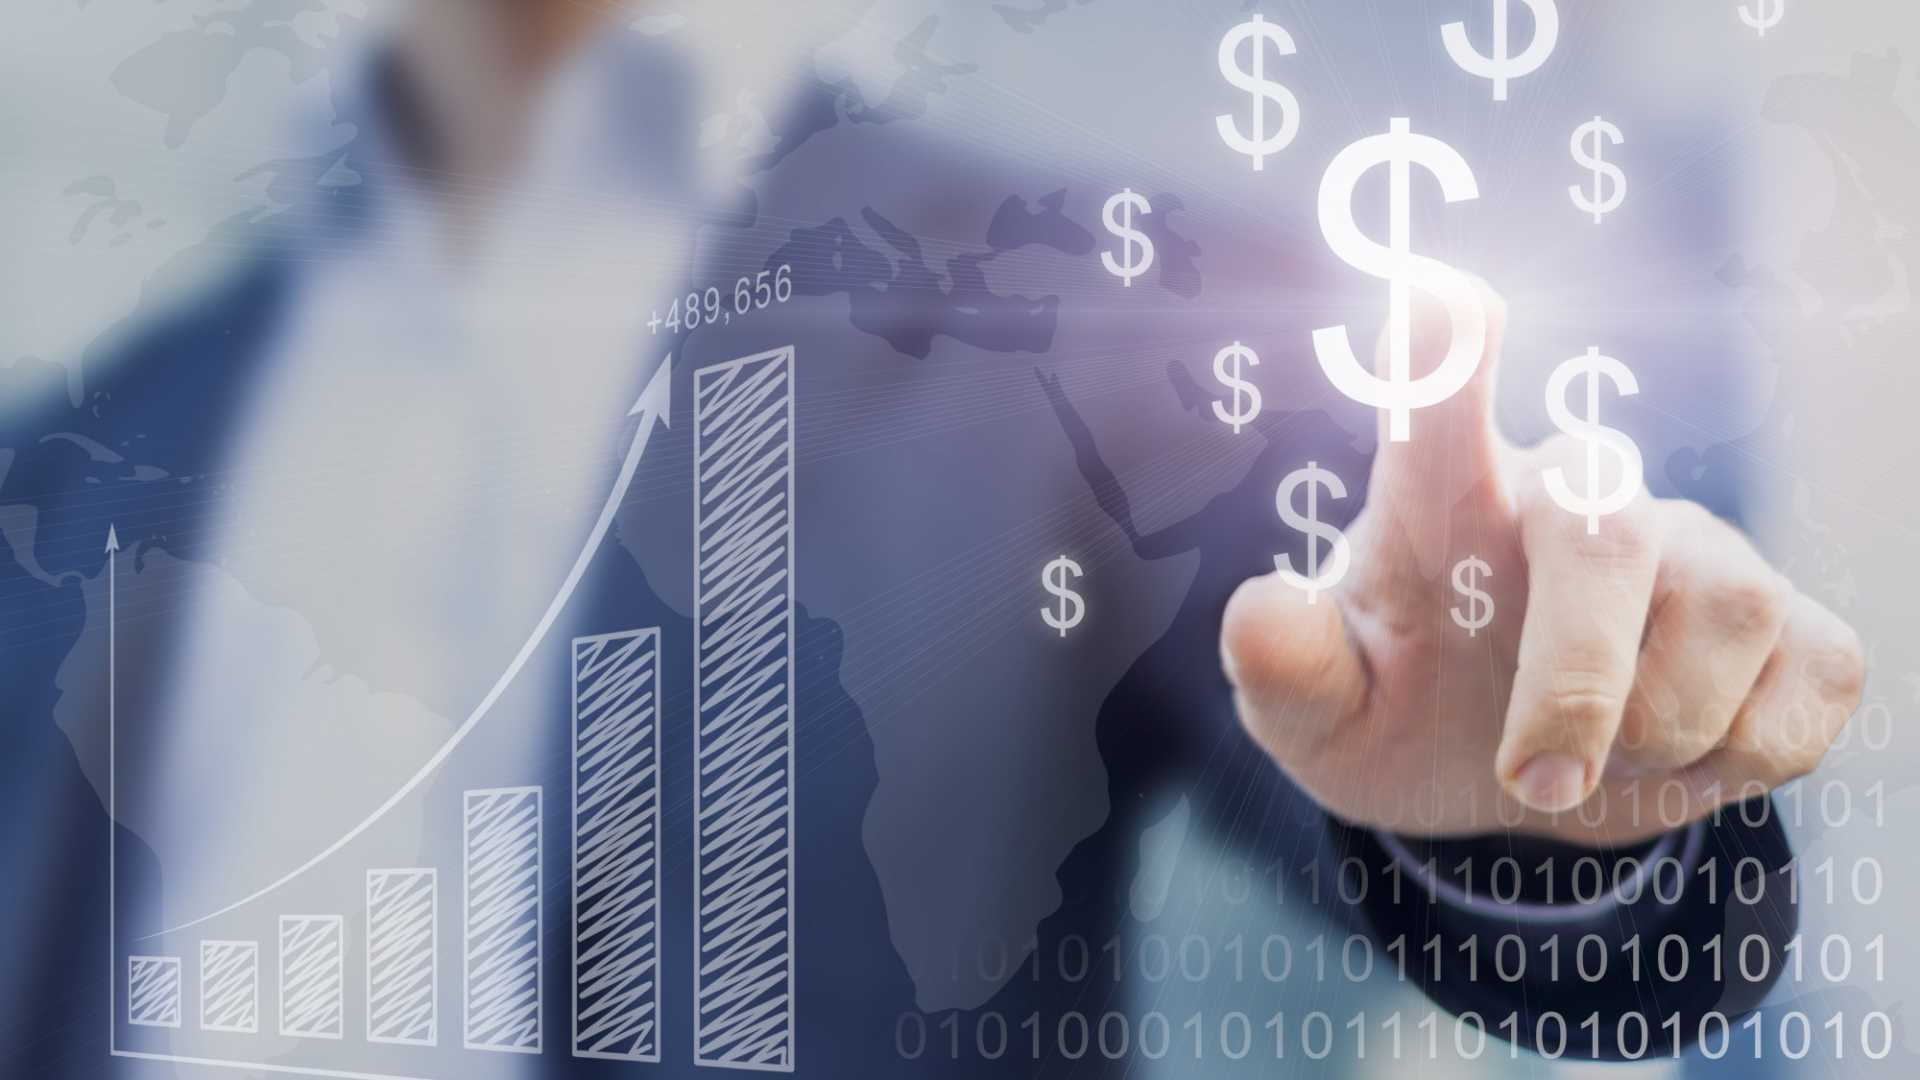 How to Monetize the Data in Your Business